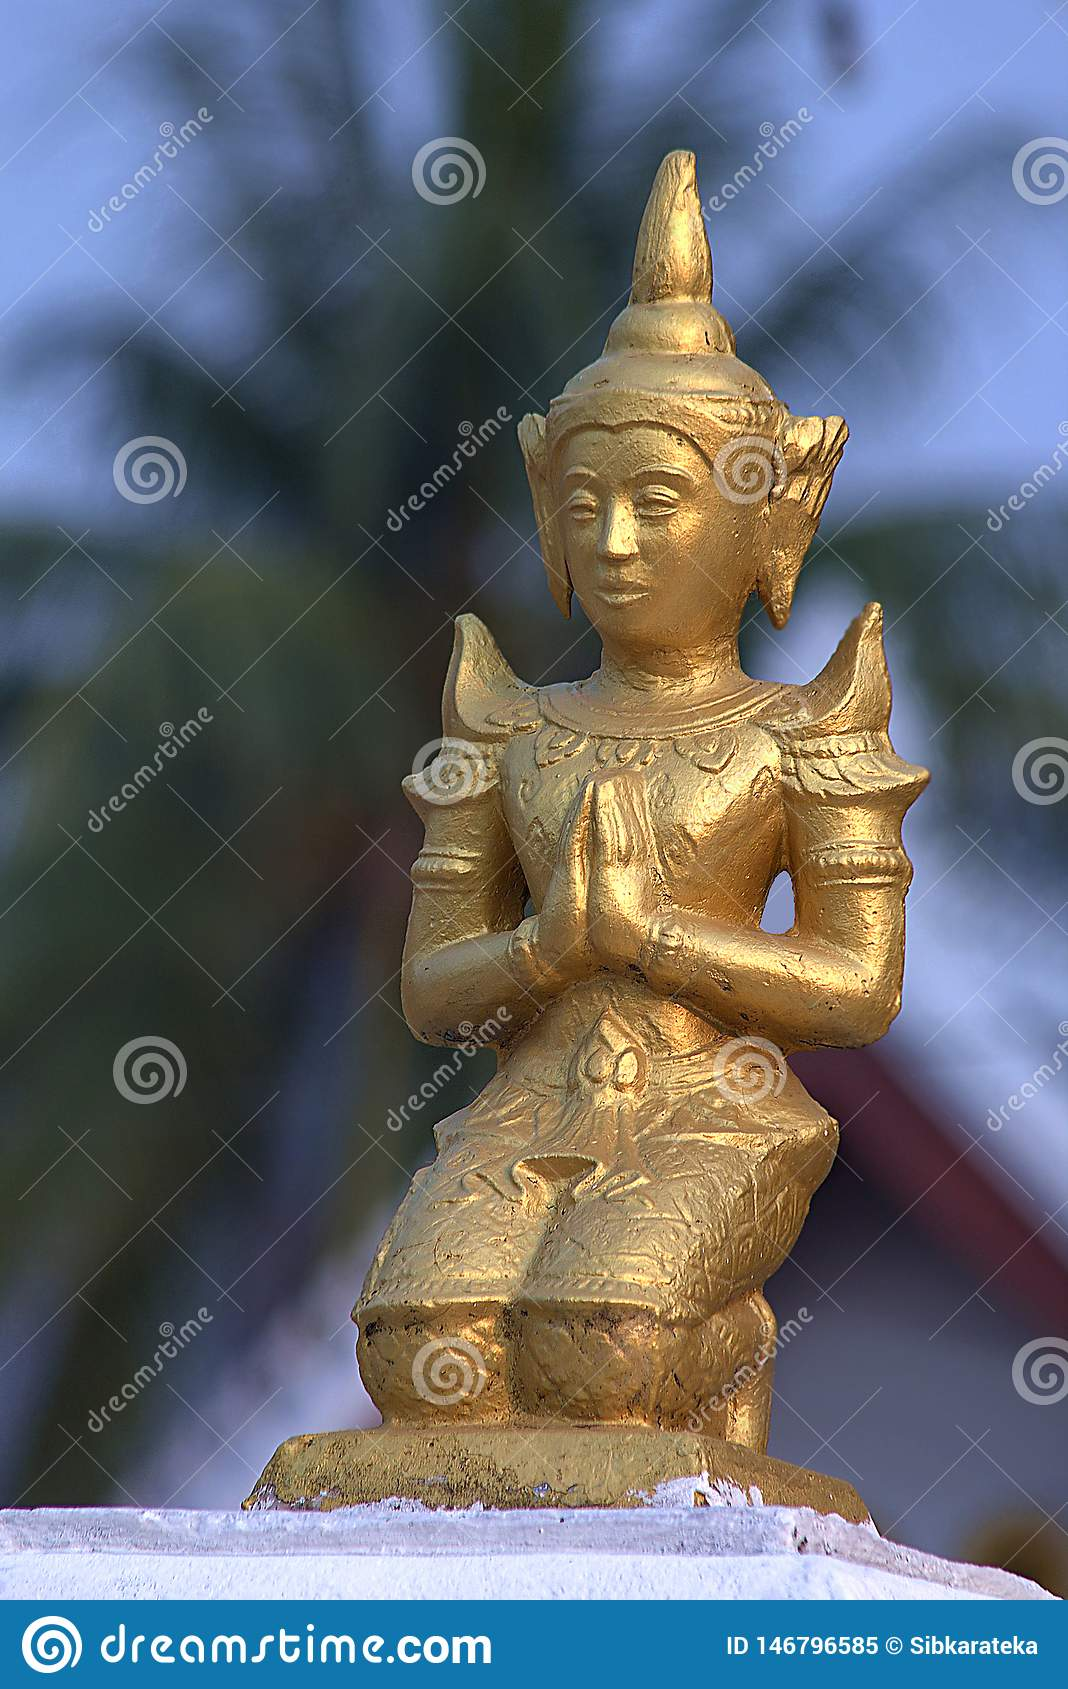 Small golden sculpture in buddhist temple